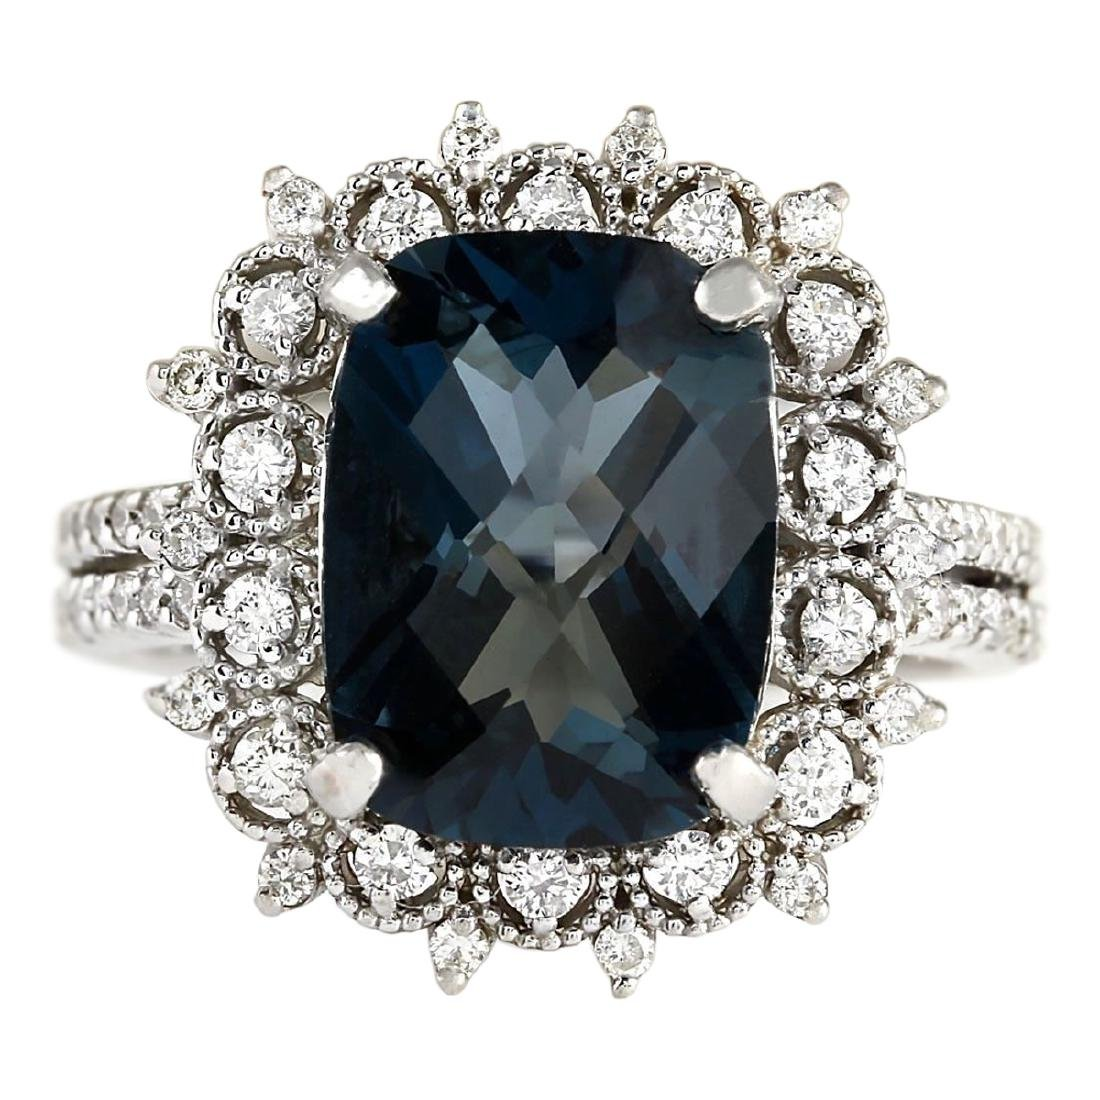 7.42 CTW Natural London Blue Topaz And Diamond Ring